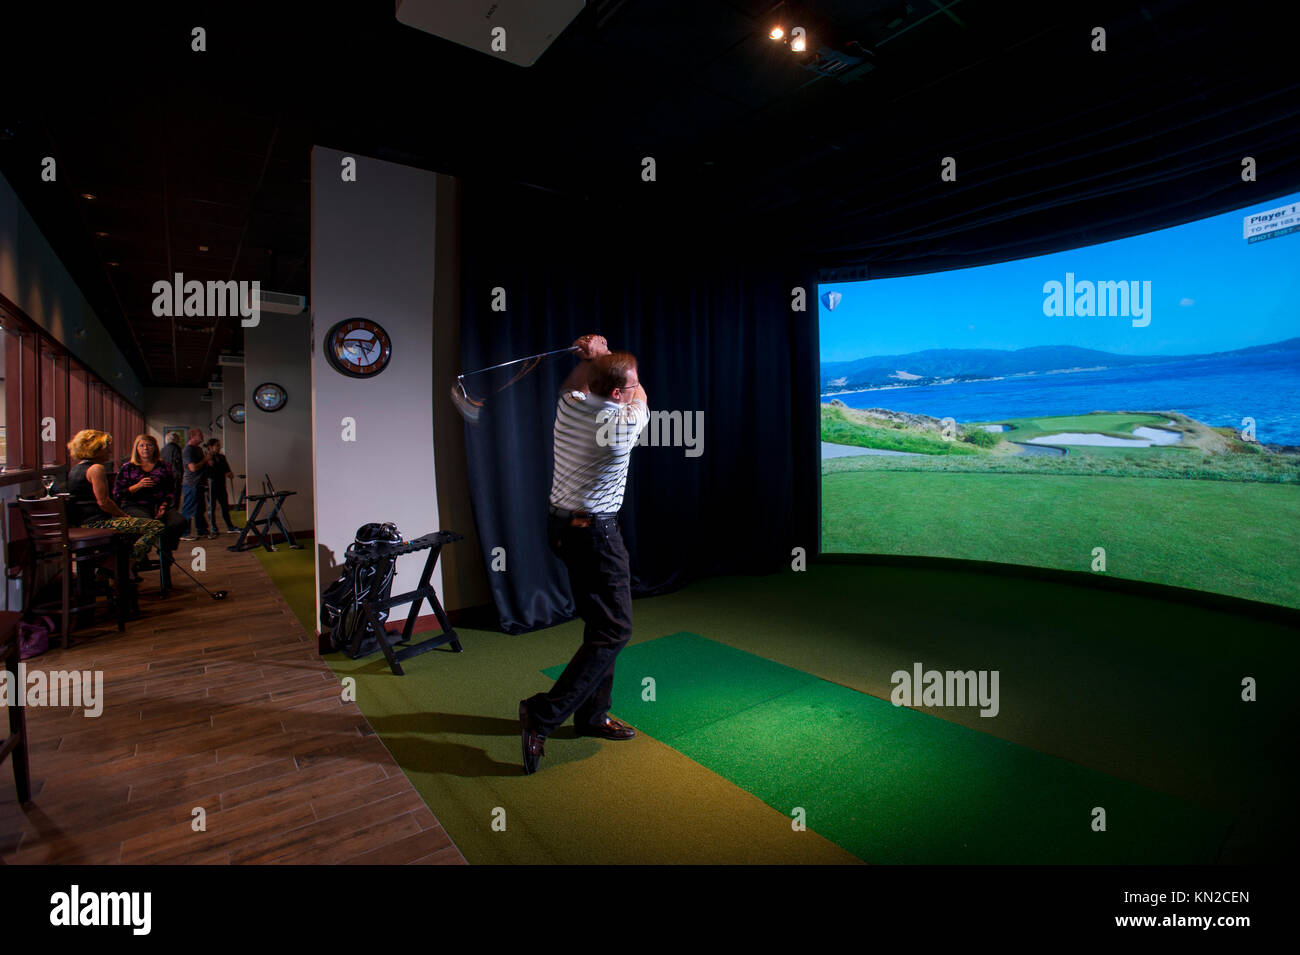 sports-indoor-simulator-virtual-golf-at-revolution-golf-and-grille-KN2CEN.jpg